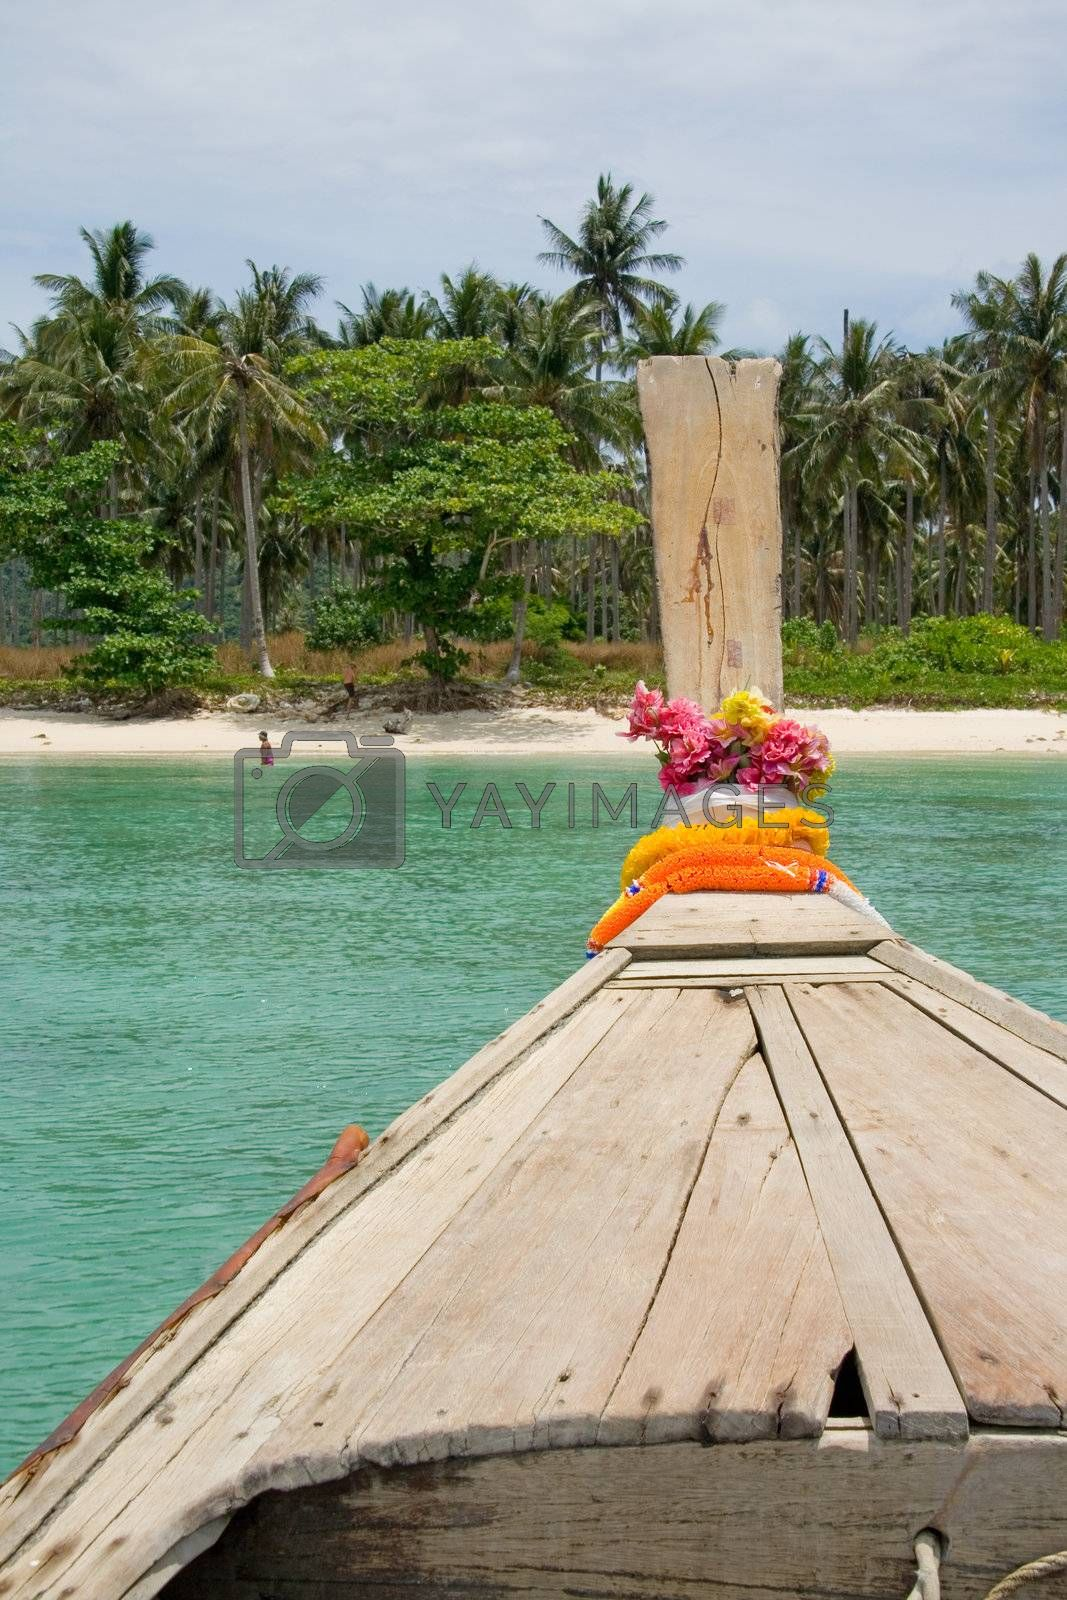 Daytrip with longtailboat around Phi Phi islands, Thailand